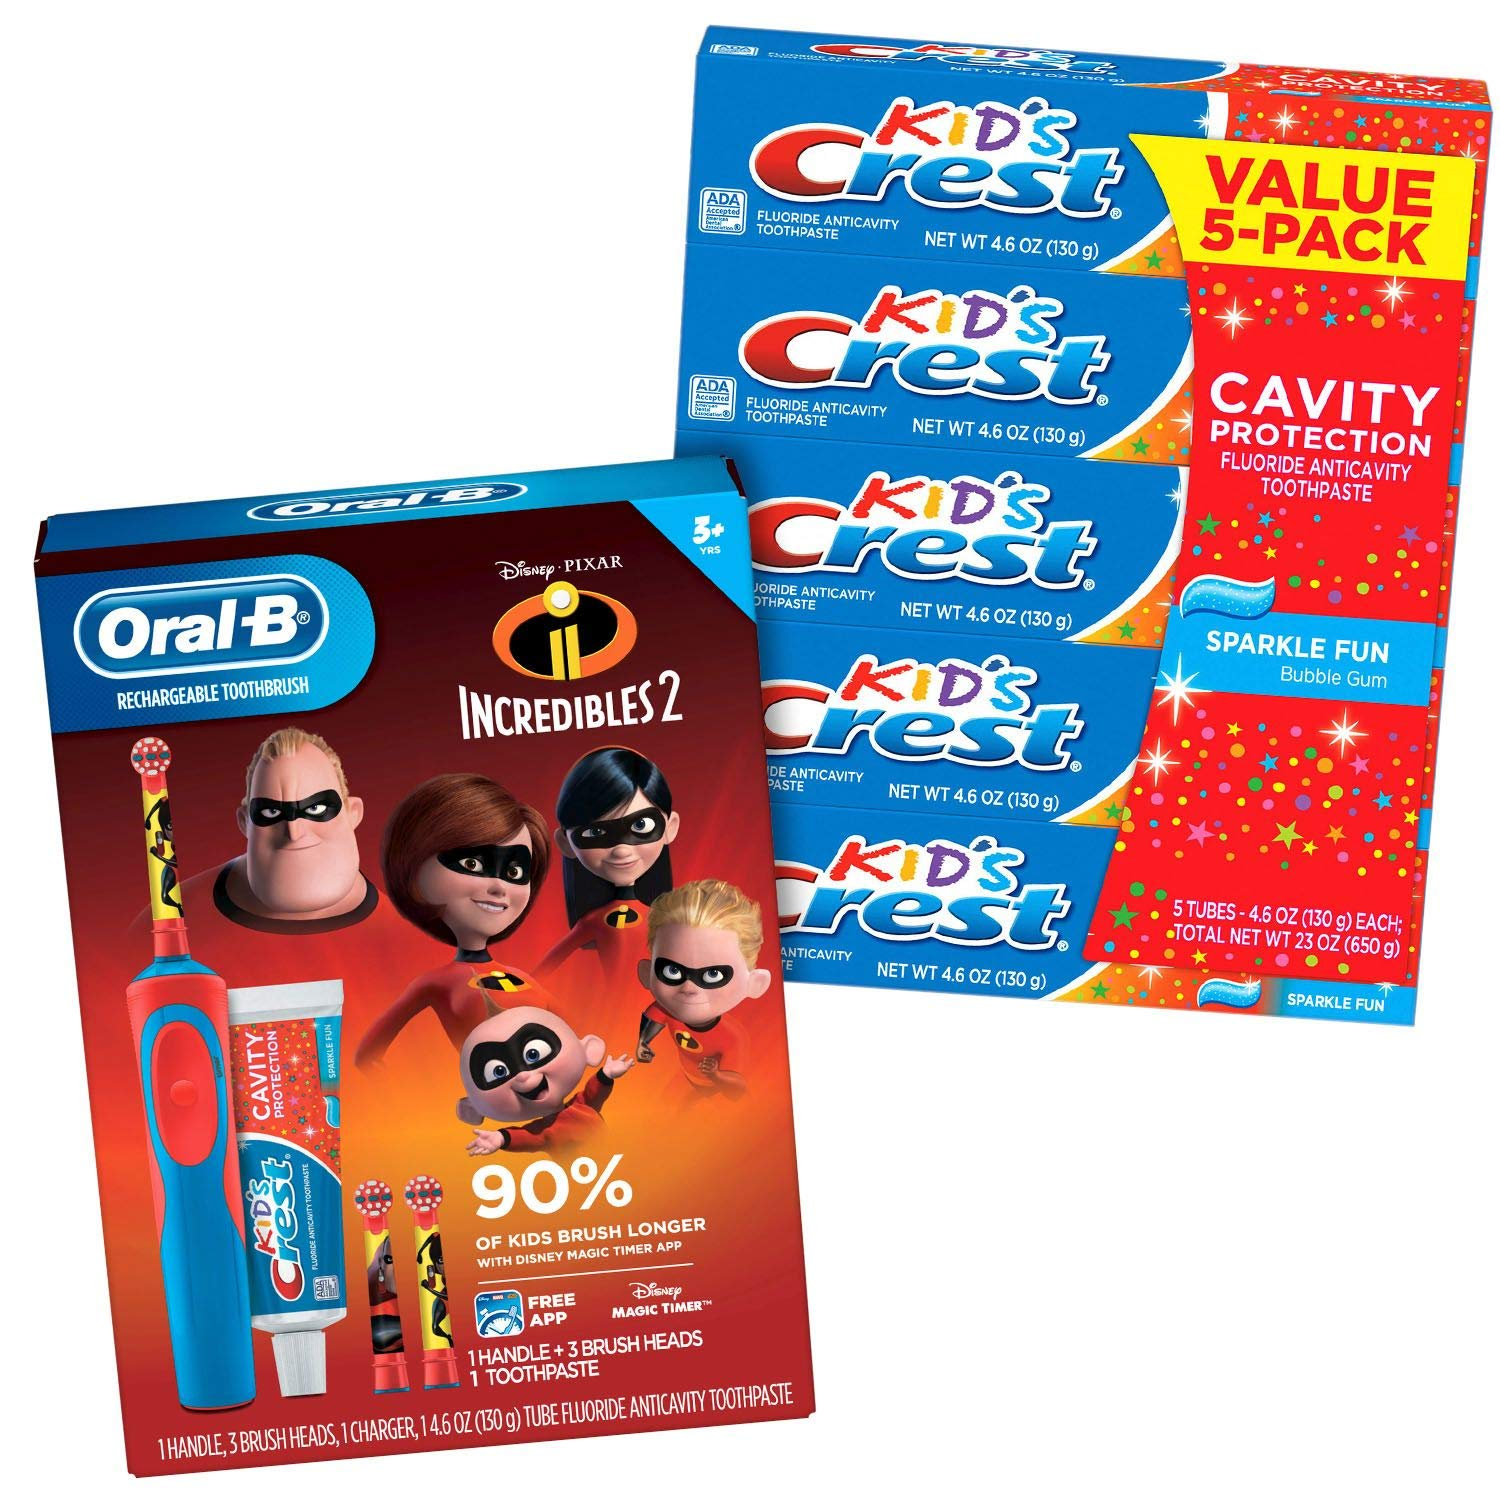 KIds-Oral-B Electric Rechargeable Power Toothbrush (Incredibles 2)